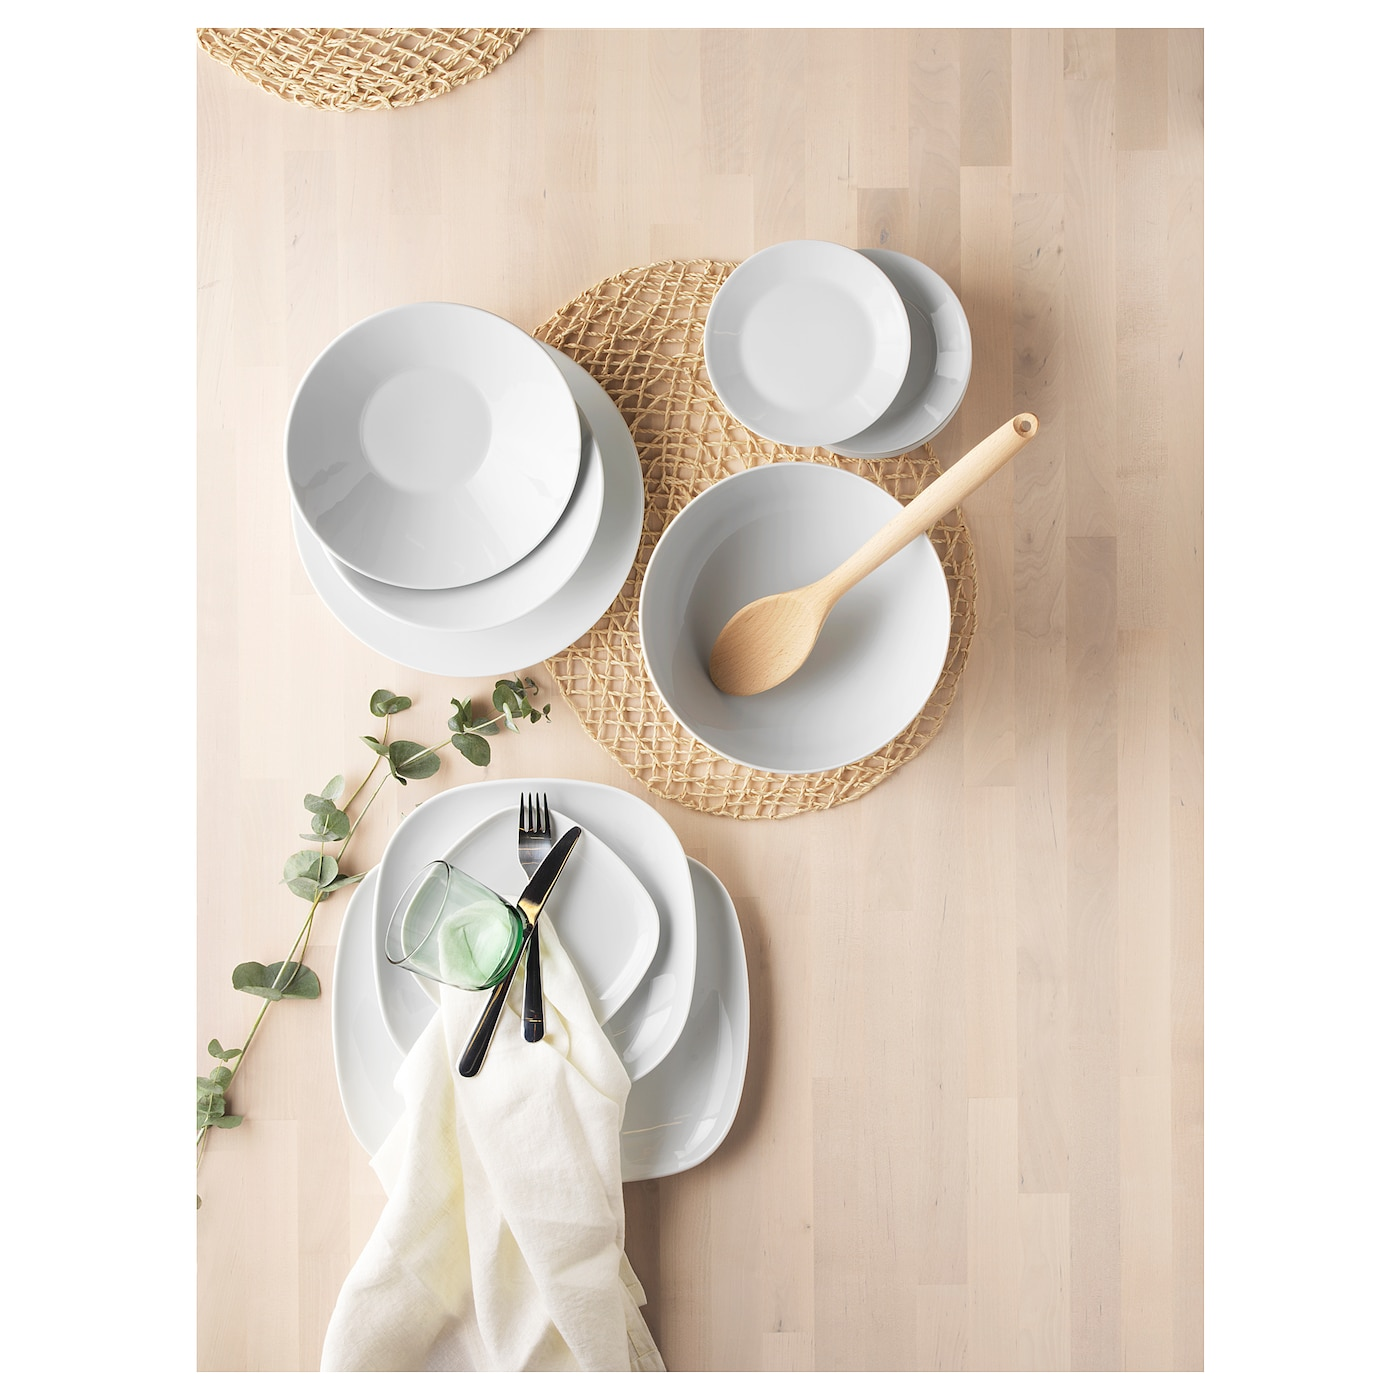 IKEA IKEA 365+ bowl Practical and useful deep plate/bowl, suitable both for serving and eating from.